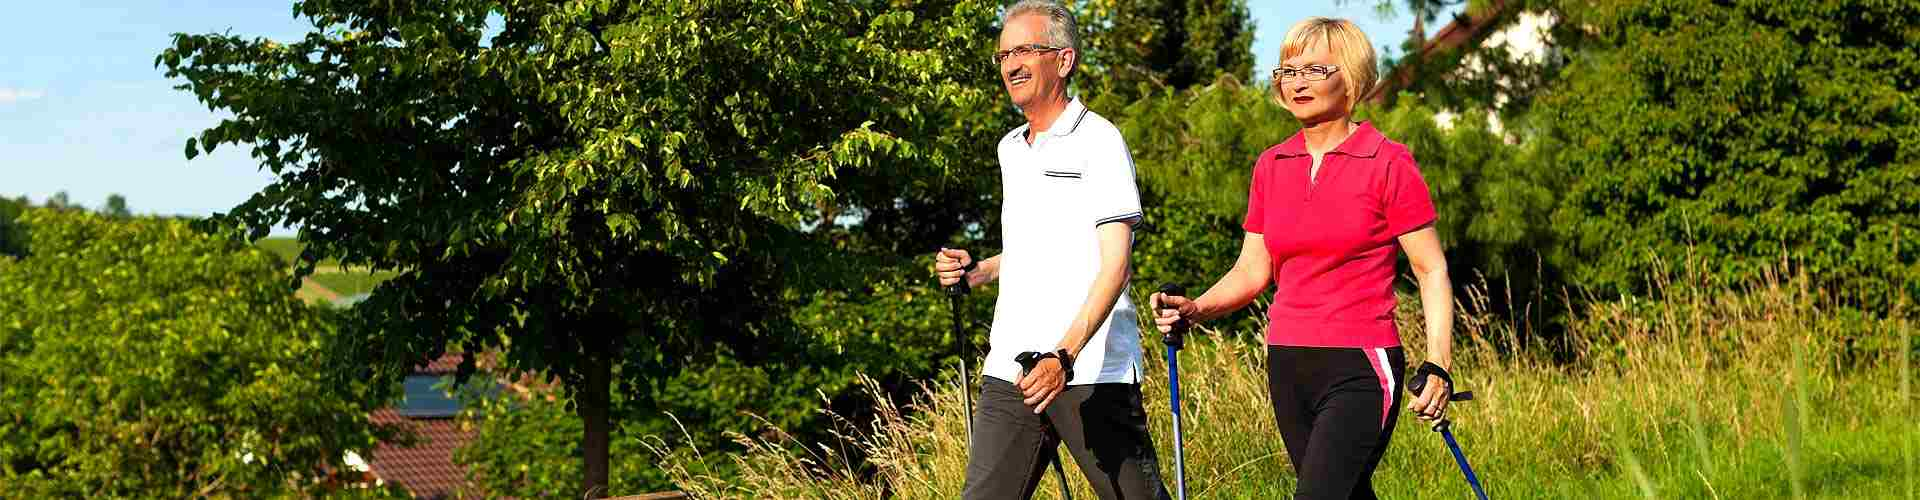 Nordic walking en Valencia